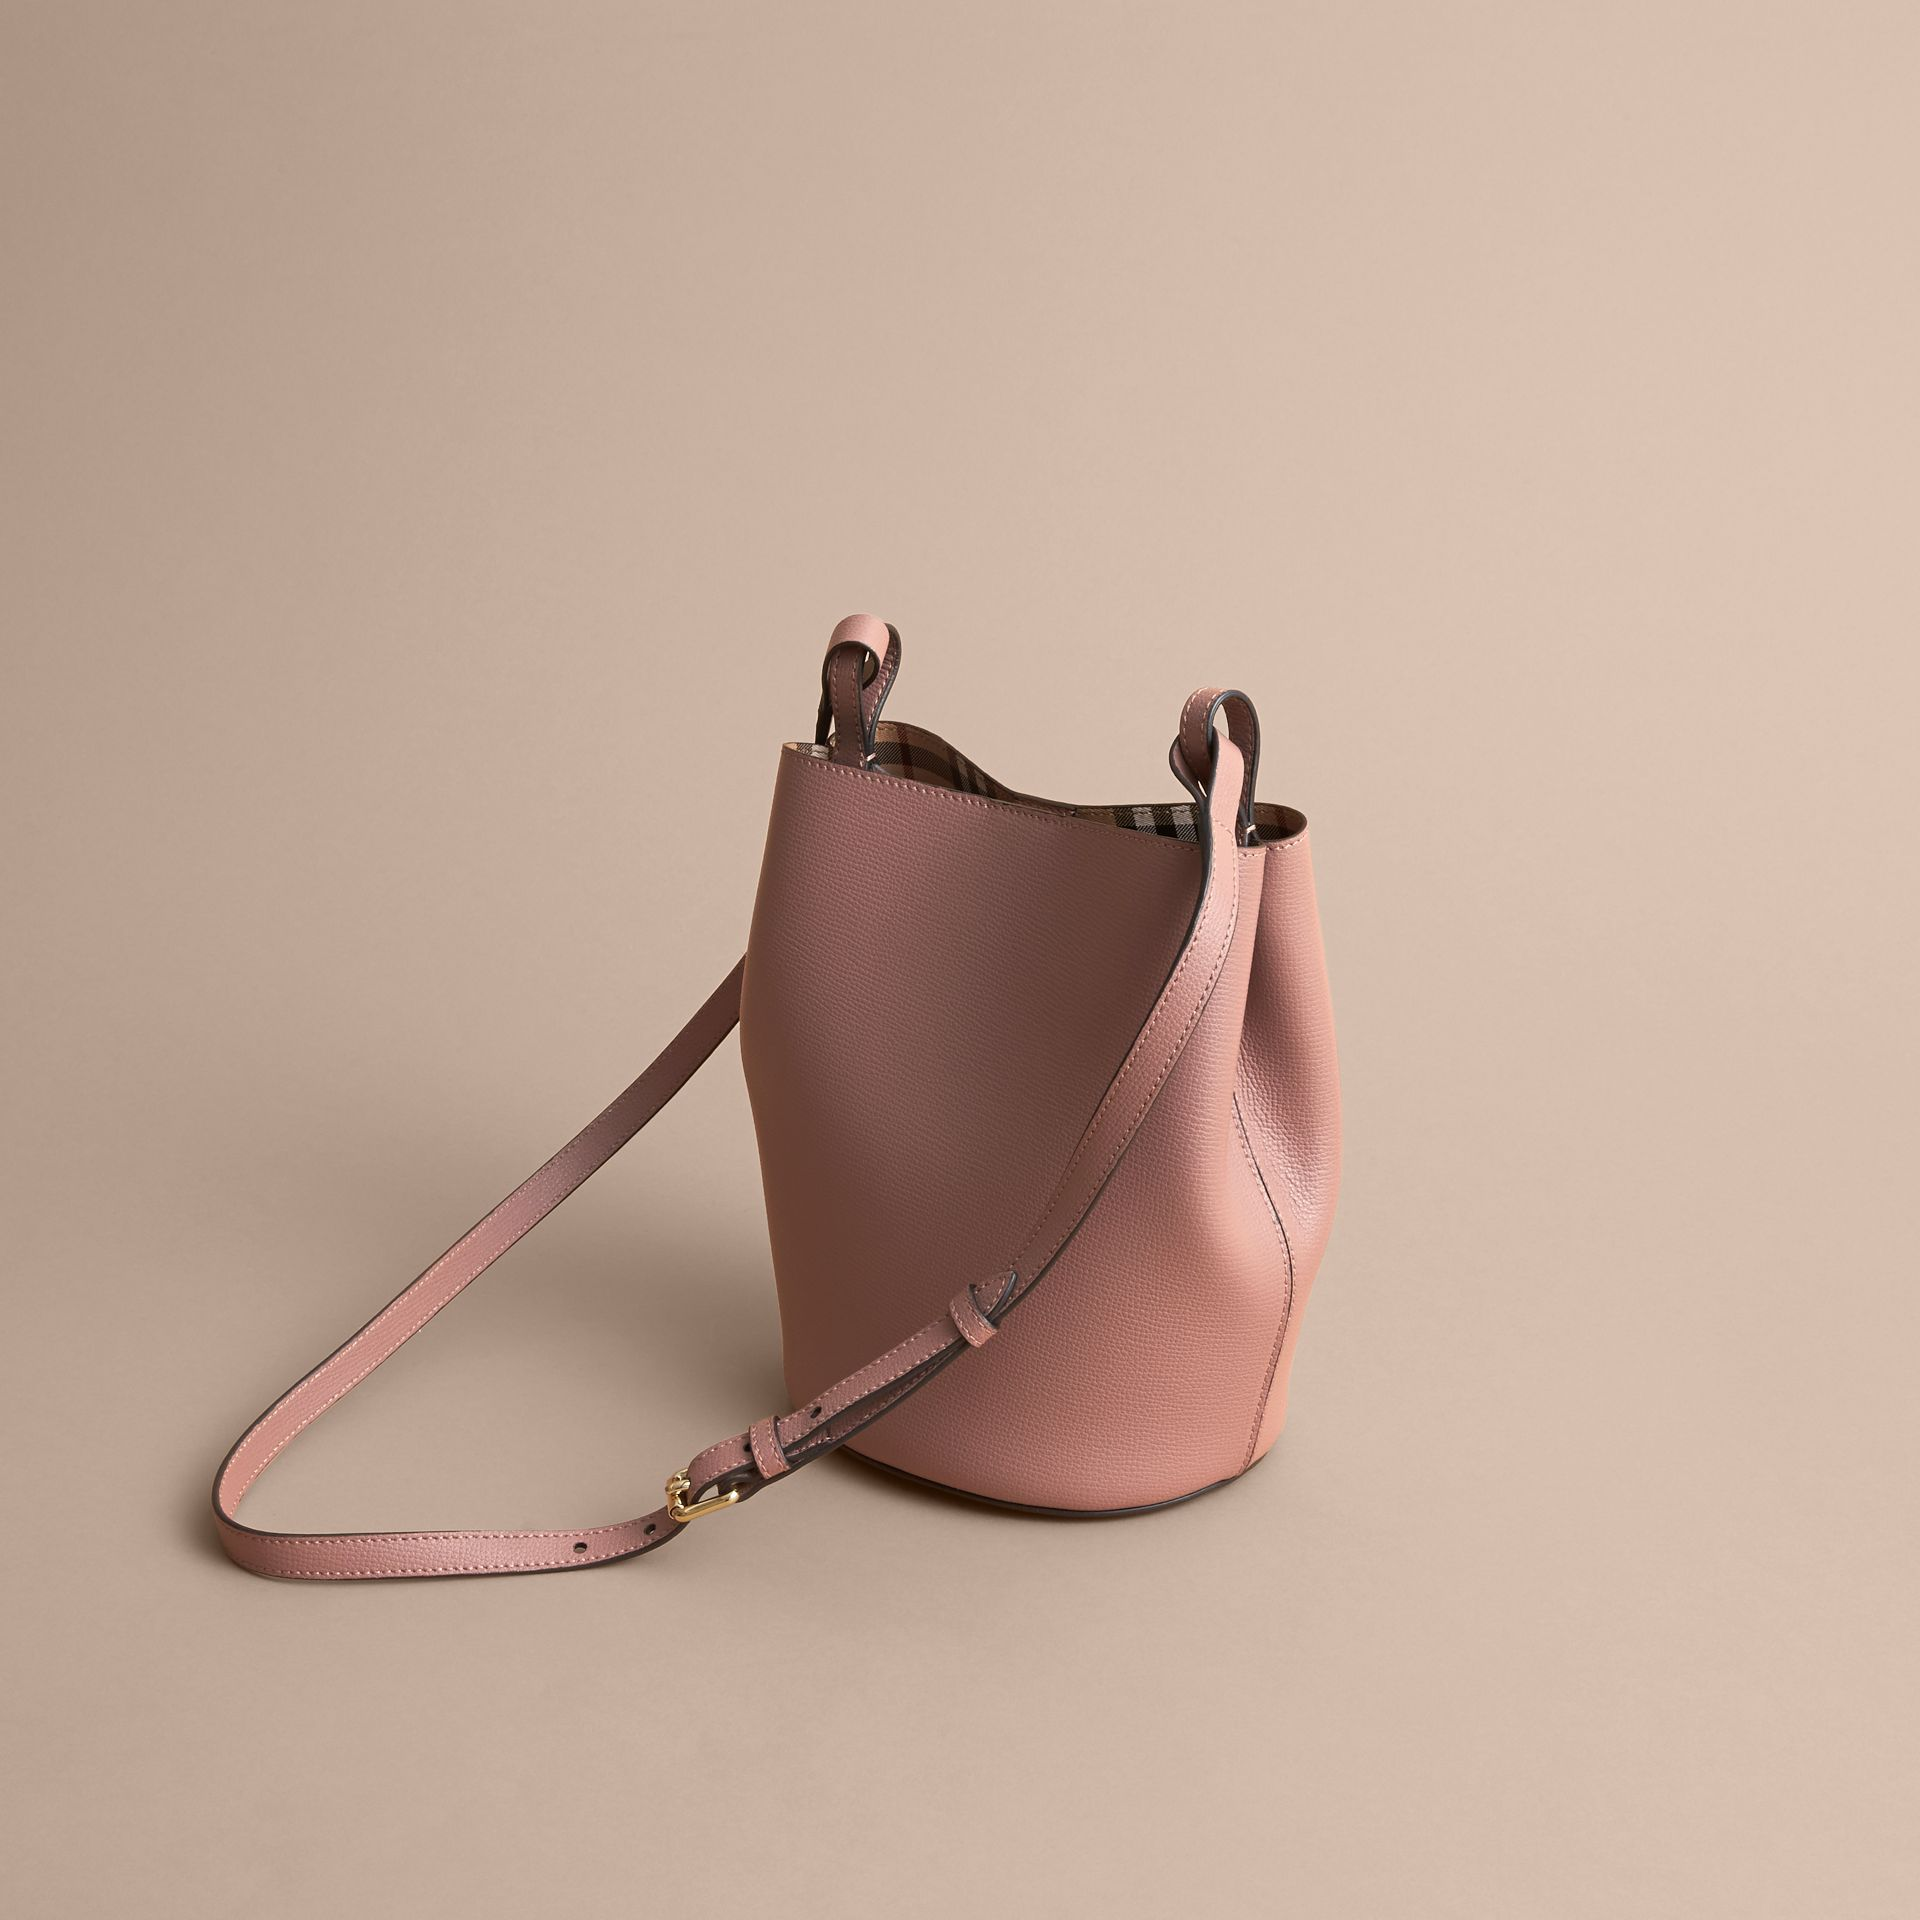 Leather and Haymarket Check Crossbody Bucket Bag in Light Elderberry - Women | Burberry Canada - gallery image 4